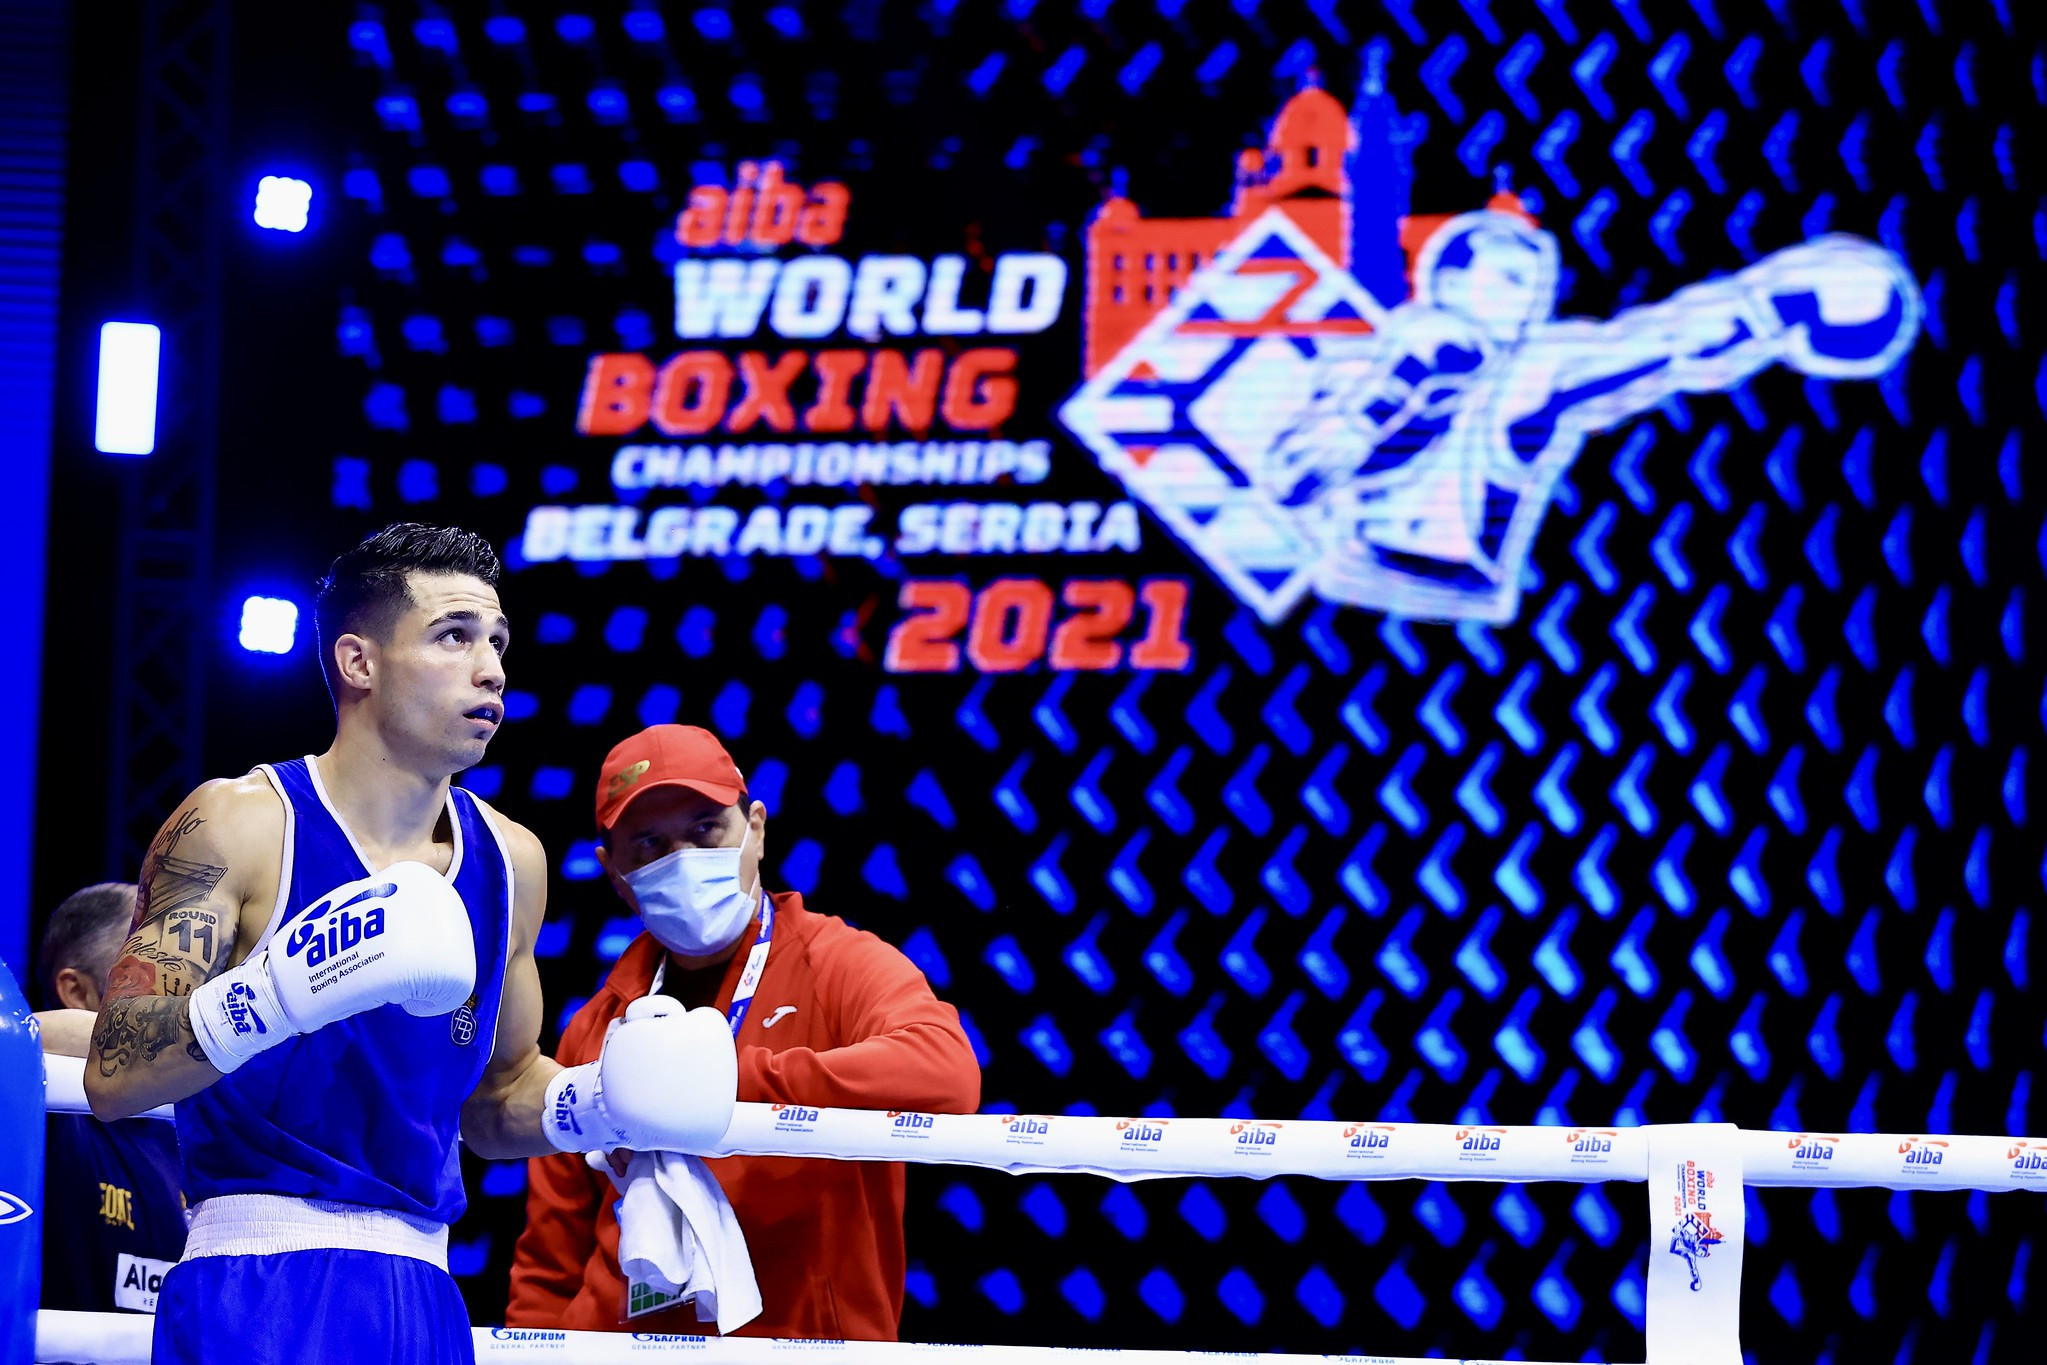 Boxers in the under-57kg and under-67kg categories competed today at the World Boxing Championships ©AIBA